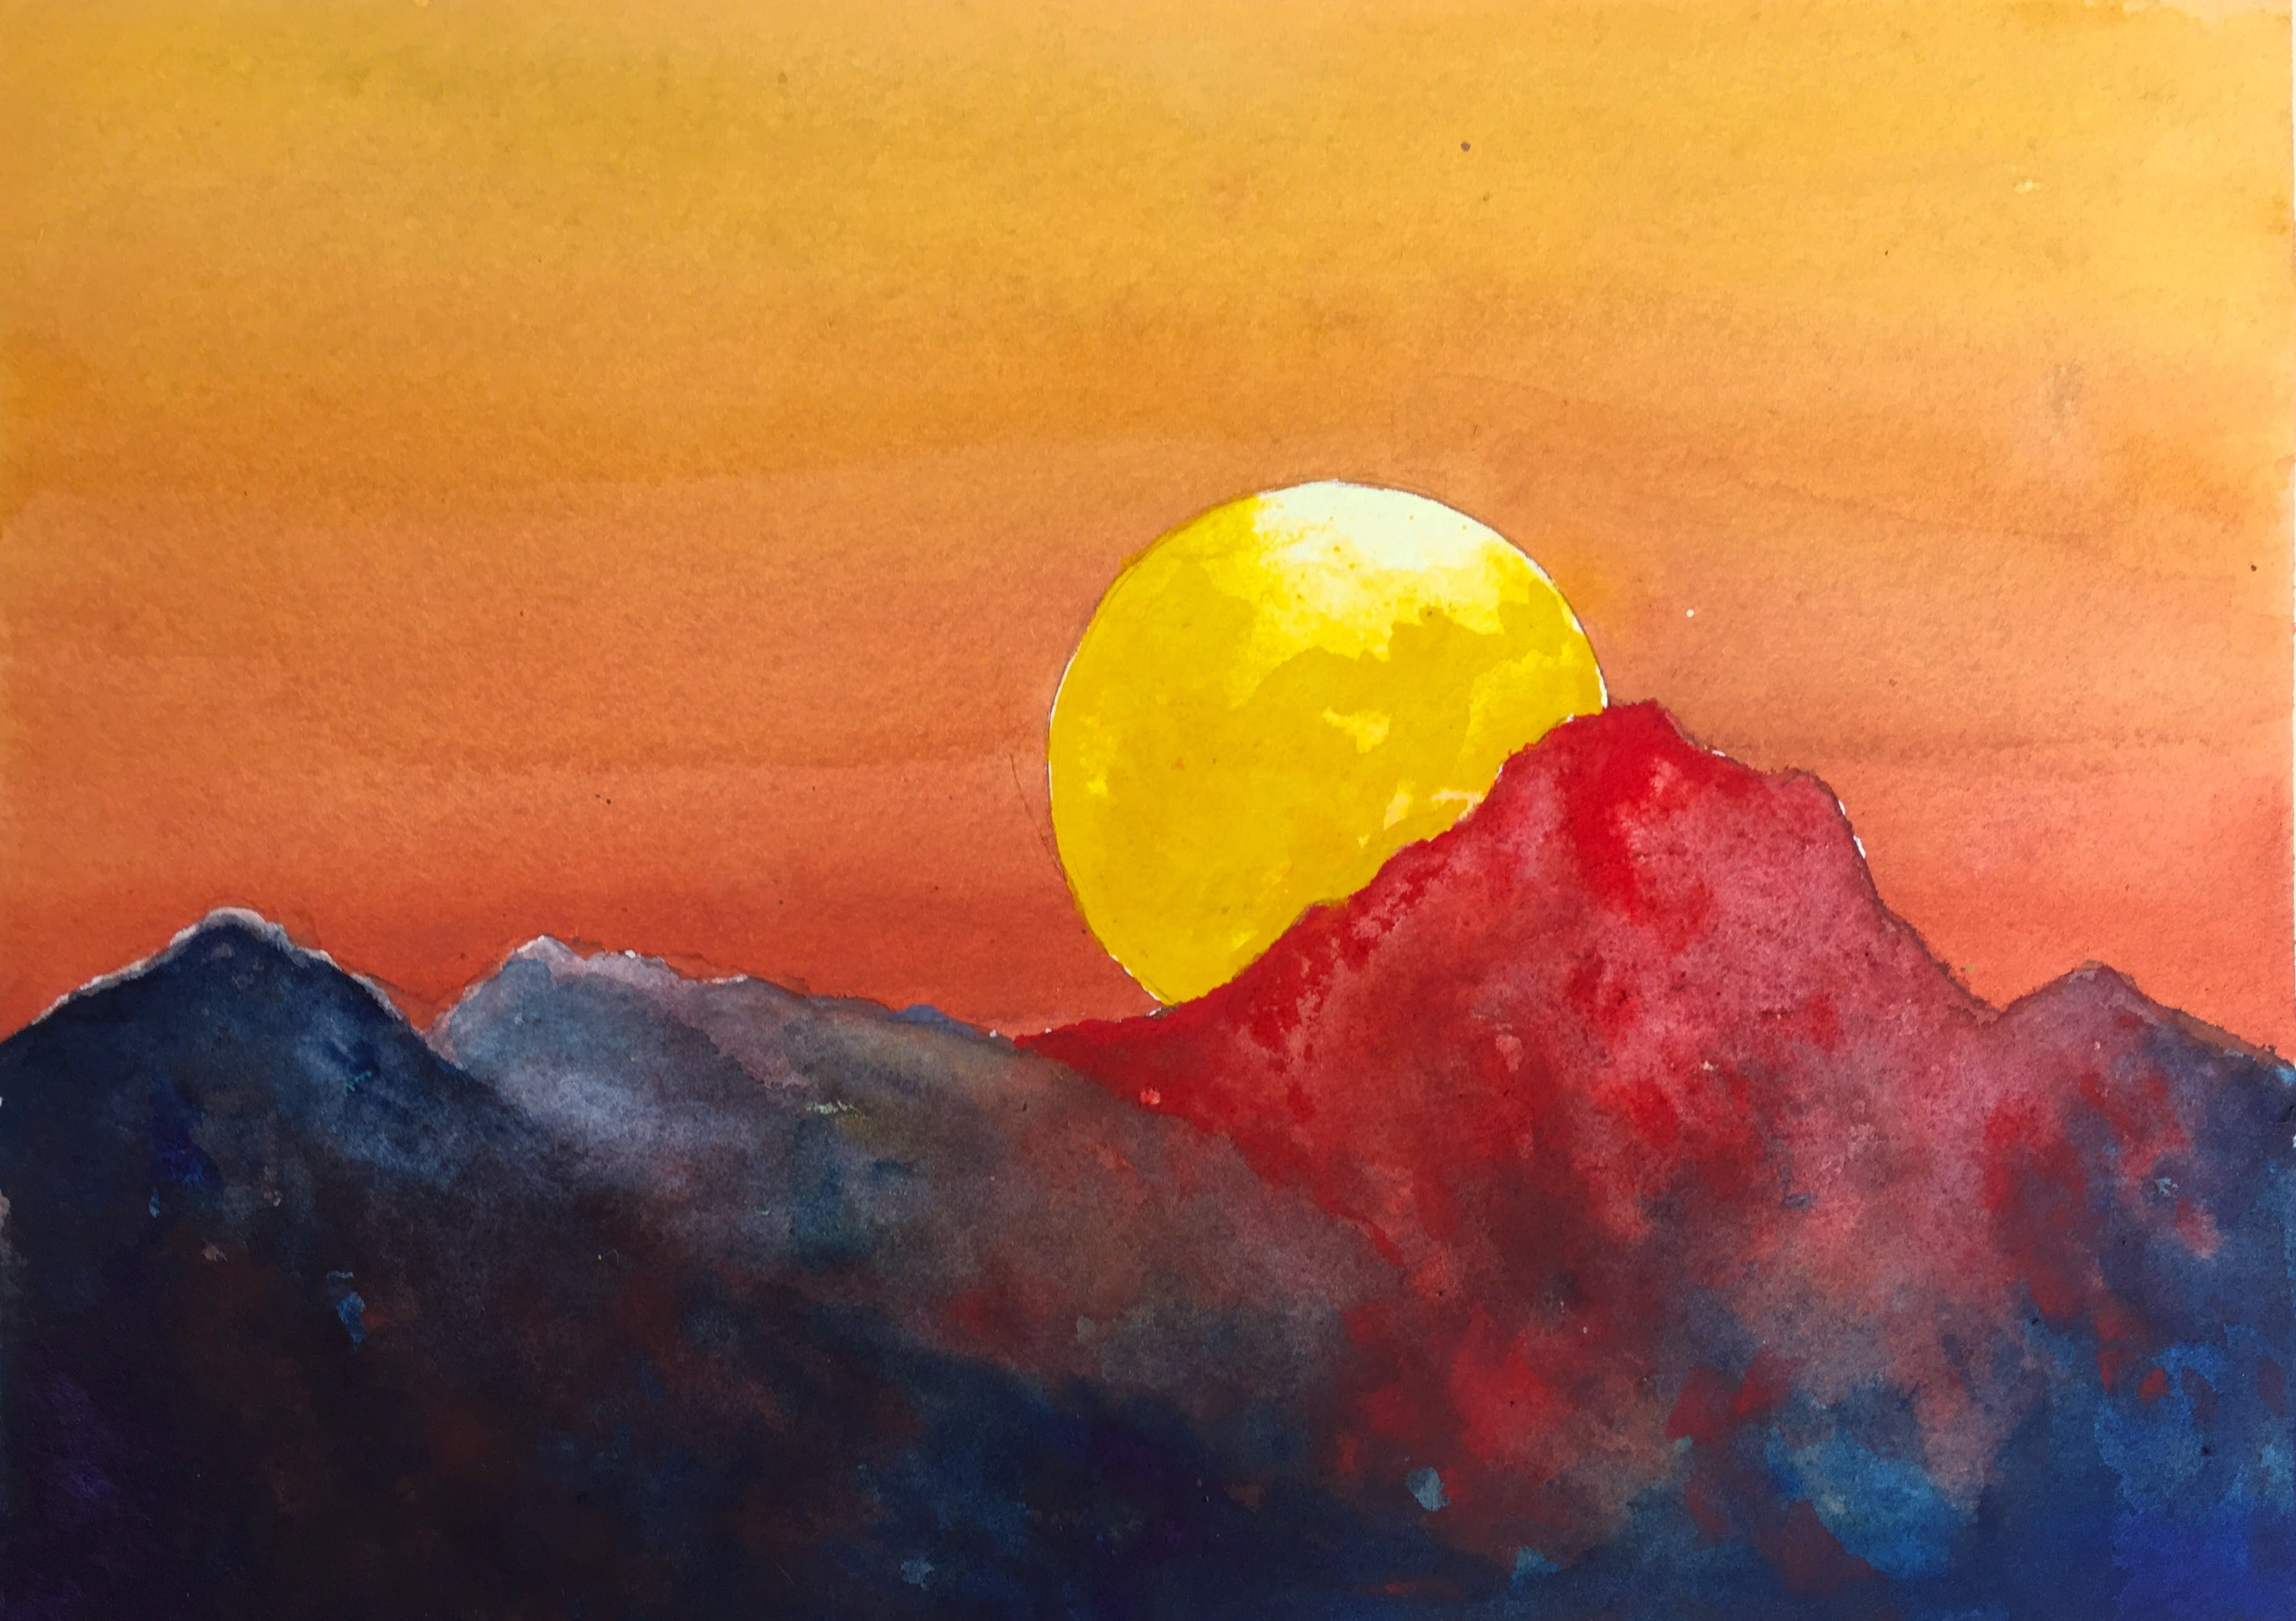 How To Paint A Dramatic Sunset With Watercolor Easy Tutorial Watercolor Paintings For Beginners Watercolor Paintings Easy Watercolor Sunset